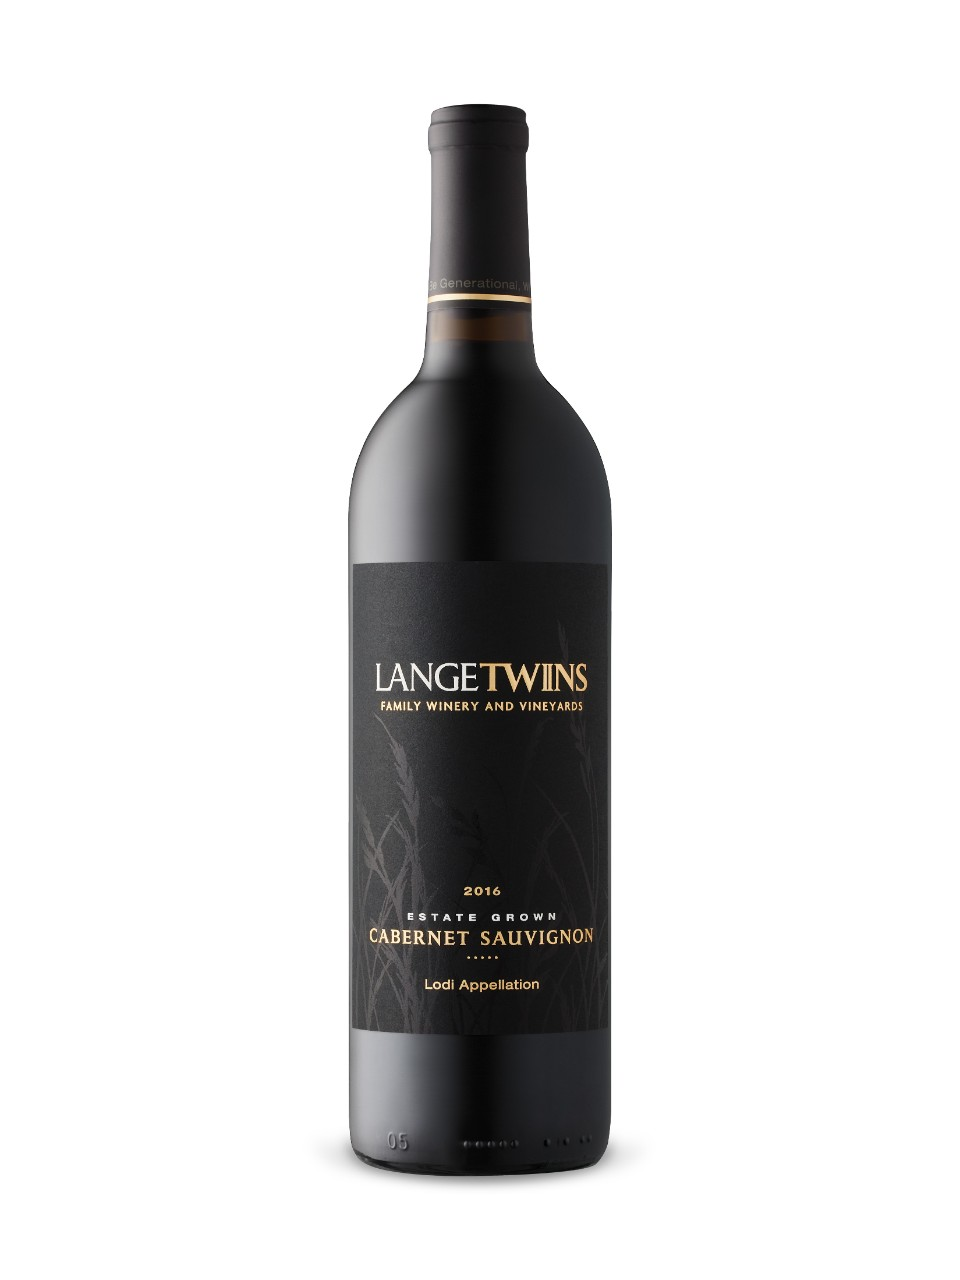 Lange Twins Estate Grown Cabernet Sauvignon 2016 from LCBO